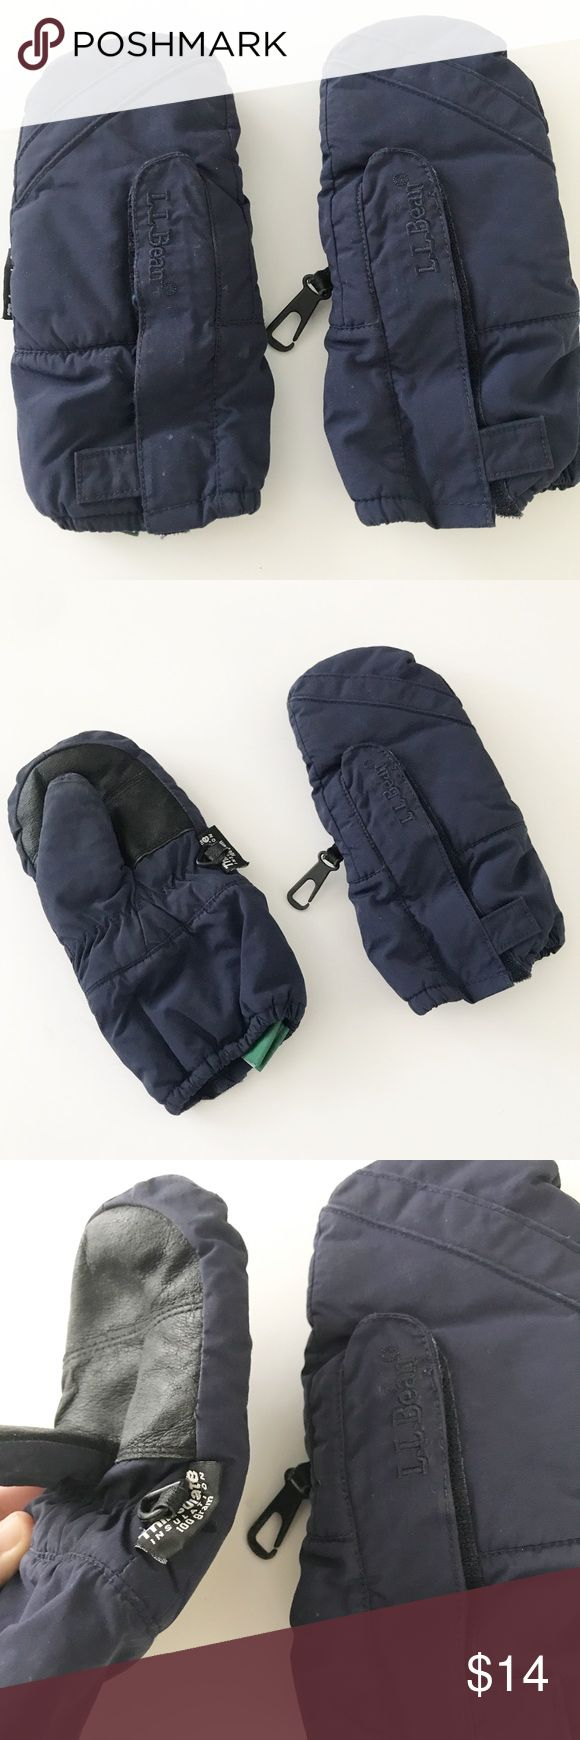 LL Bean navy blue mittens Very good condition. Has Velcro closure Accessories Mittens